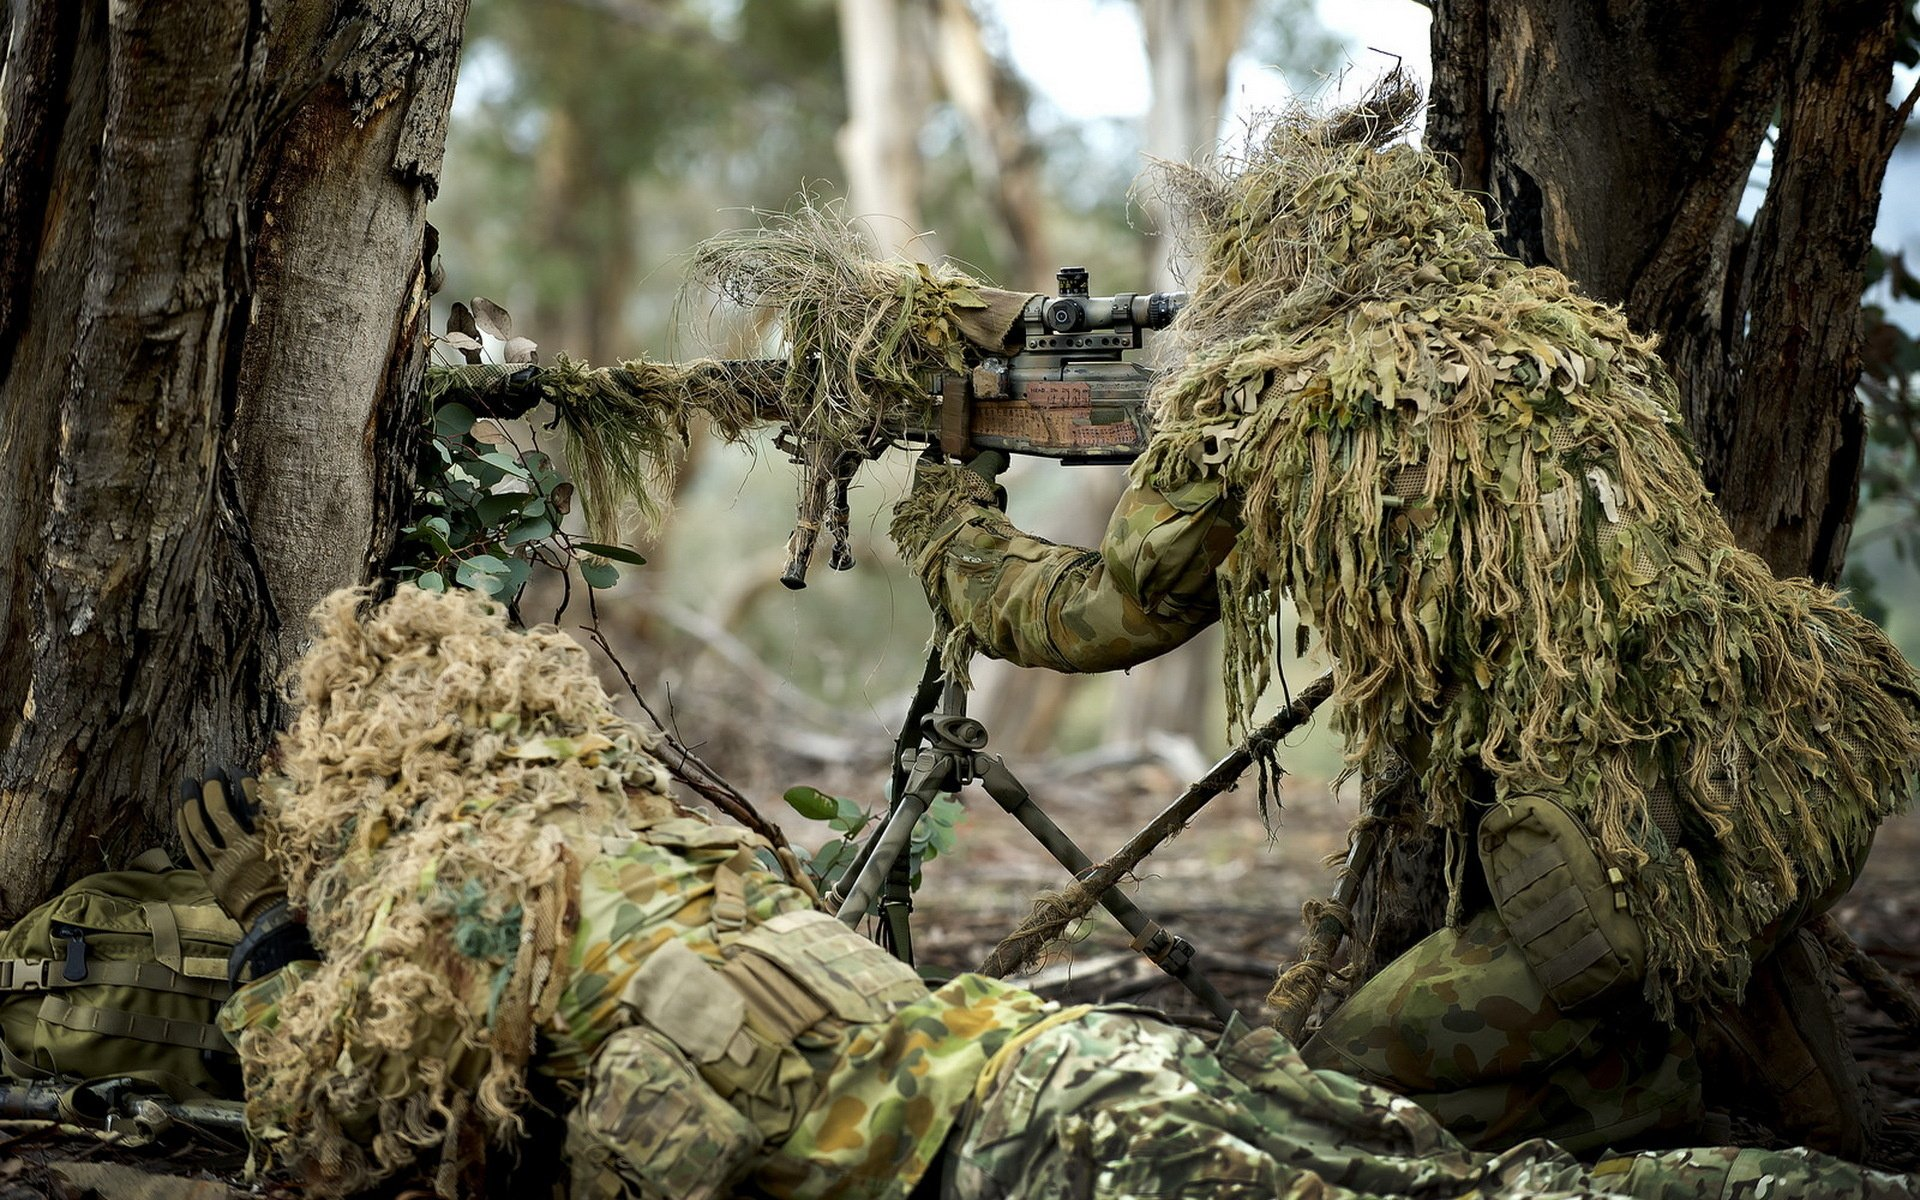 soldier weapon army gun sniper forest military wallpaper background 1920x1200